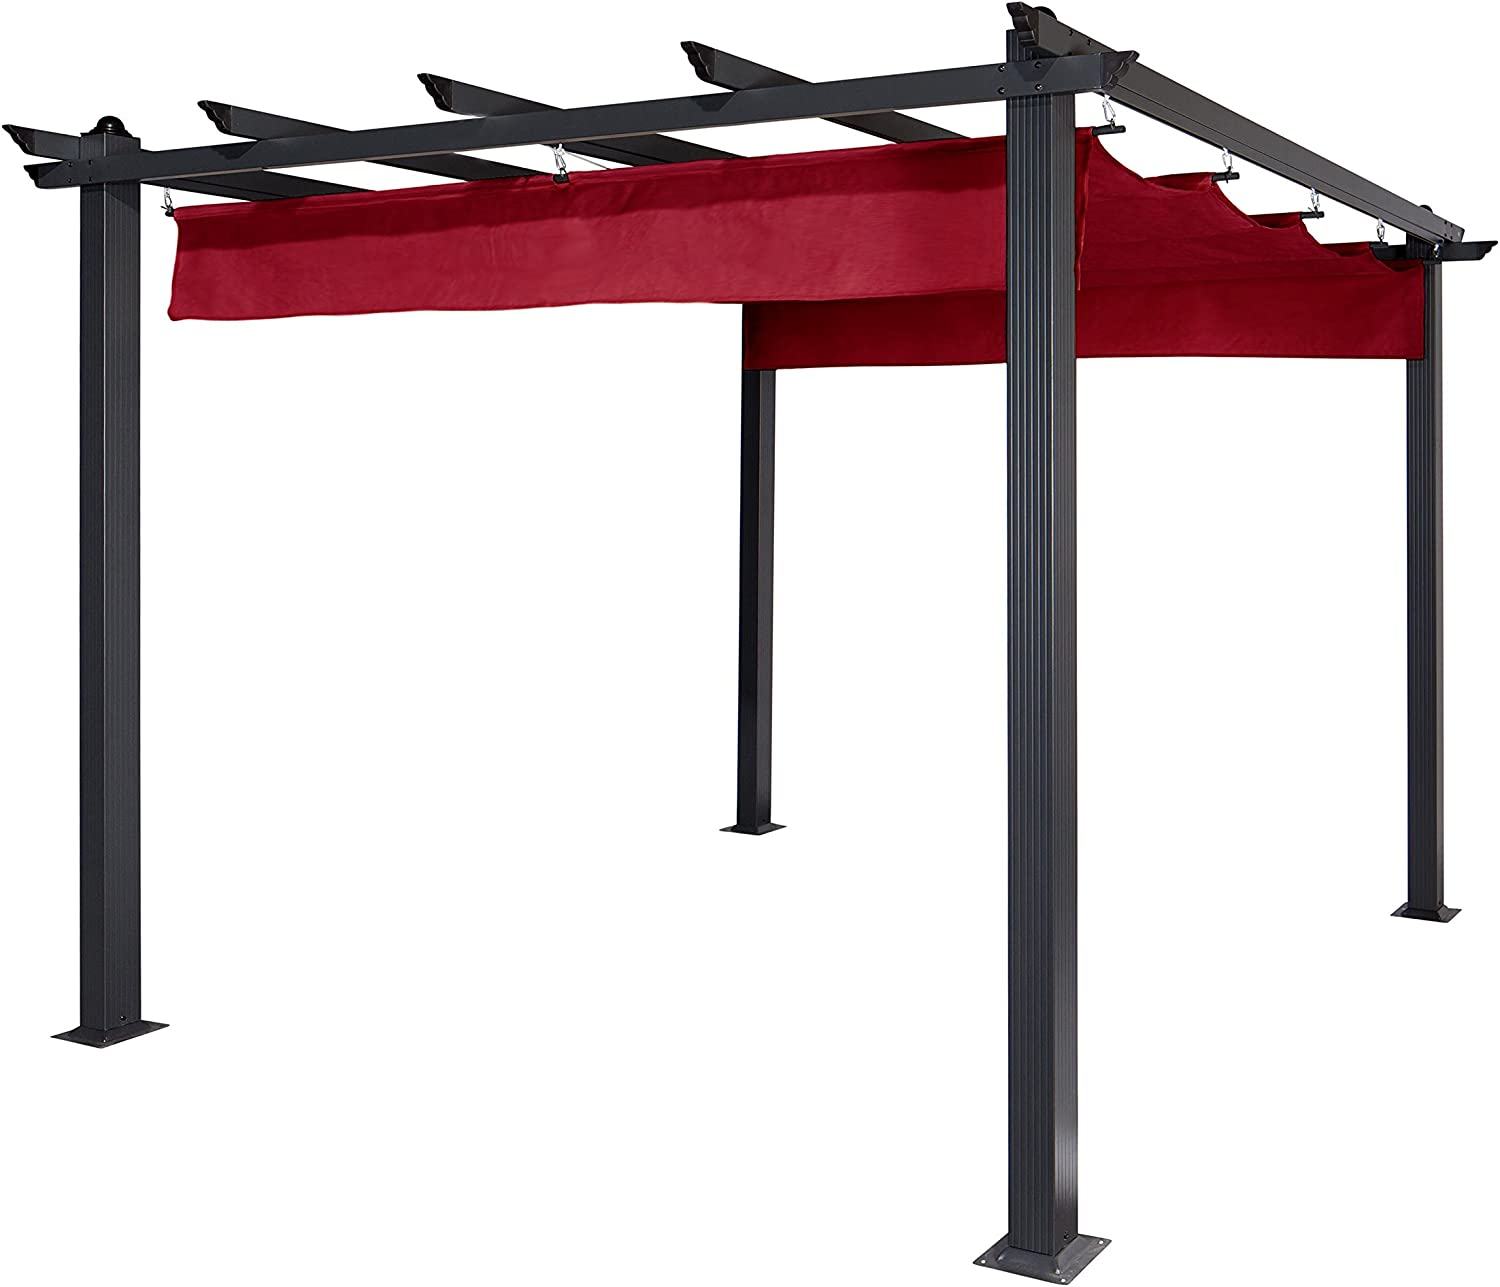 ALEKO PERGBURG Grape Trellis Pergola Outdoor Canopy Pool Garden Patio Gazebo 9 x 9 Feet Burgundy and Black